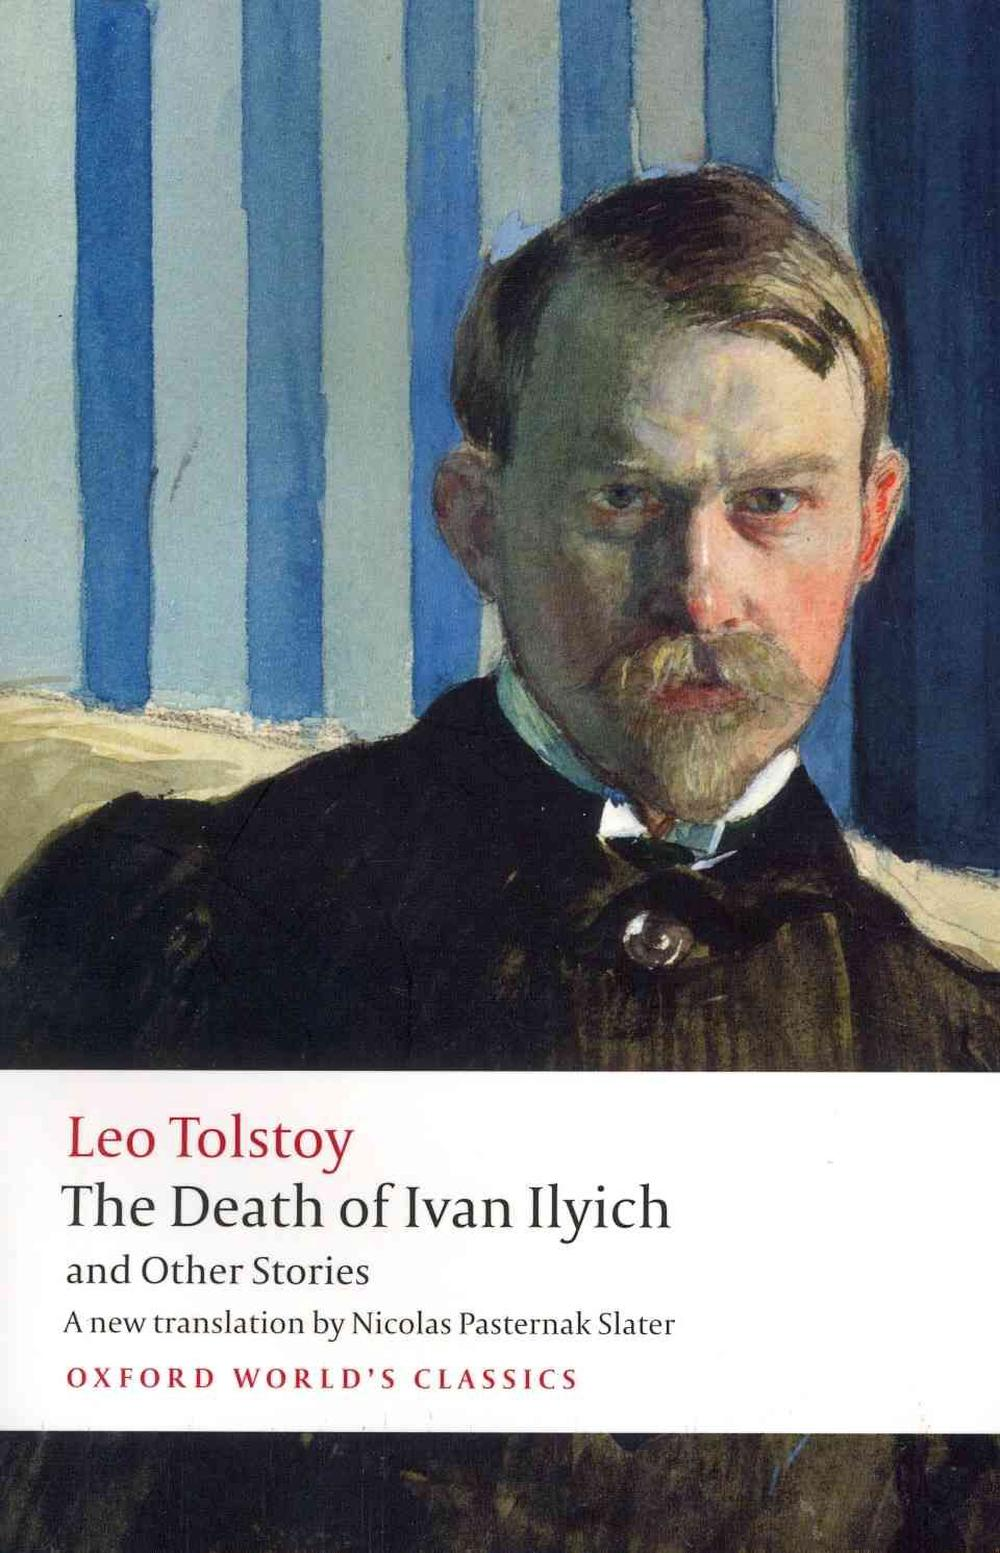 The Death of Ivan Ilyich and Other Stories (Oxford World's Classics) by Leo Tolstoy, ISBN: 9780199669882